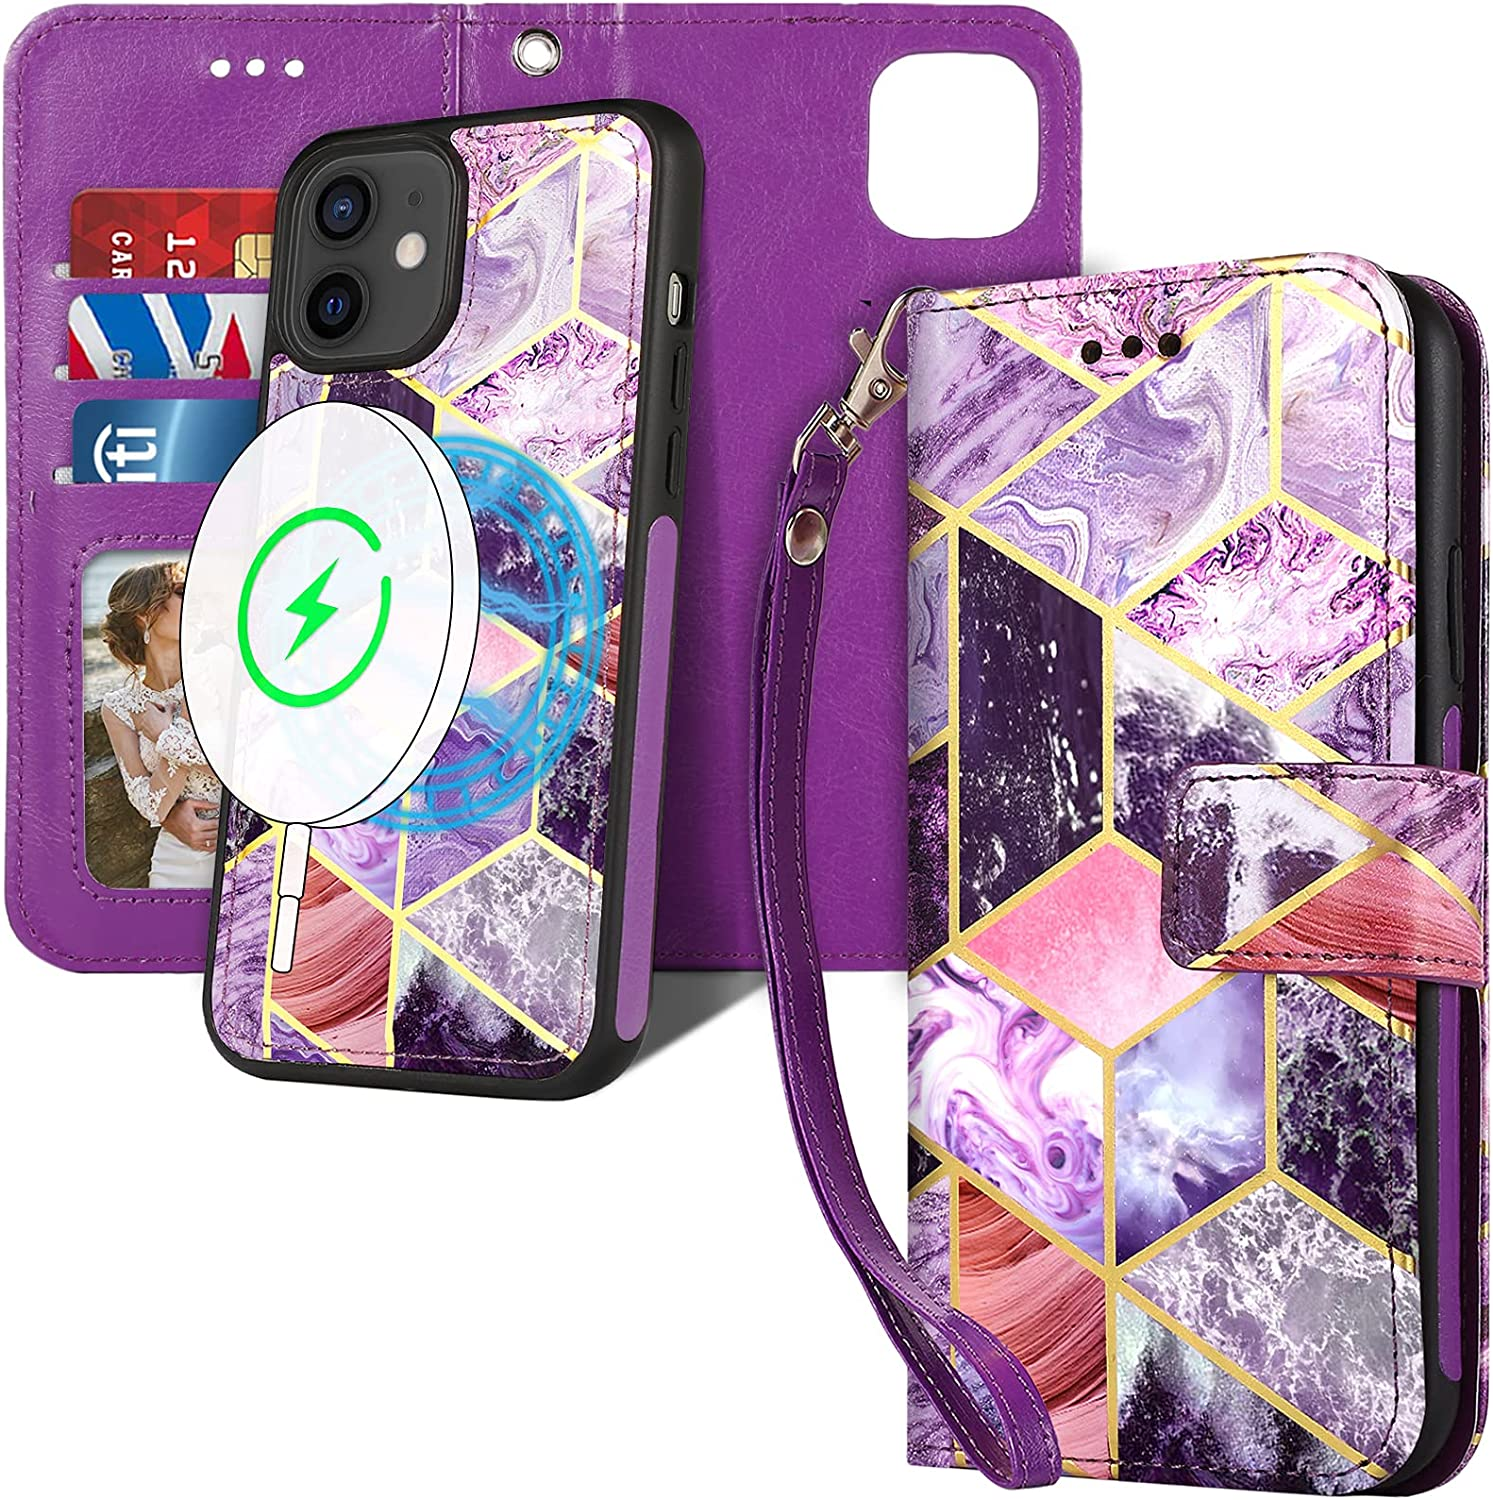 CASEOWL Compatible with iPhone 12/12 Pro Wallet Case, 2-in-1 Magnetic Detachable [Wireless Charging Support] with Card Holder,RFID Blocking,Strap,Leather Wallet Phone Case for 12/12 Pro 6.1